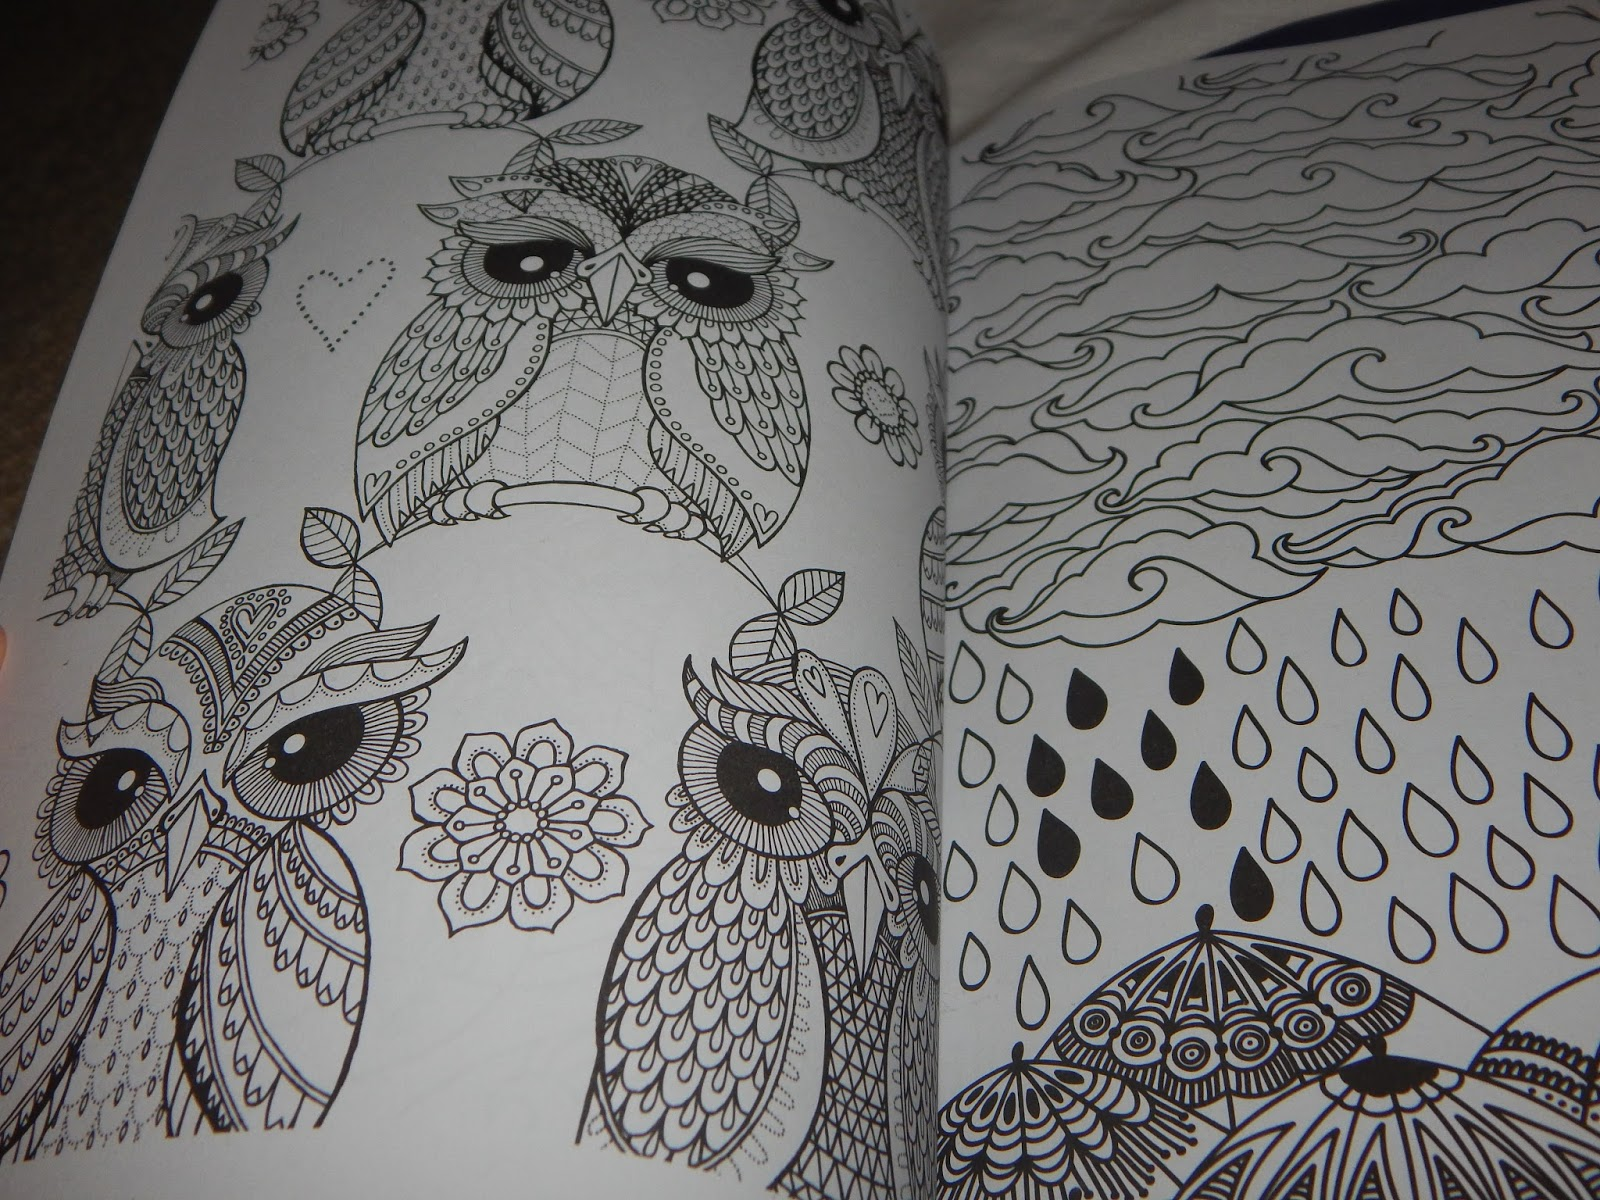 The Final Item Was A Colouring Book I Received Cant Sleep Have Enjoyed Having To Use My Creativity Create Colour